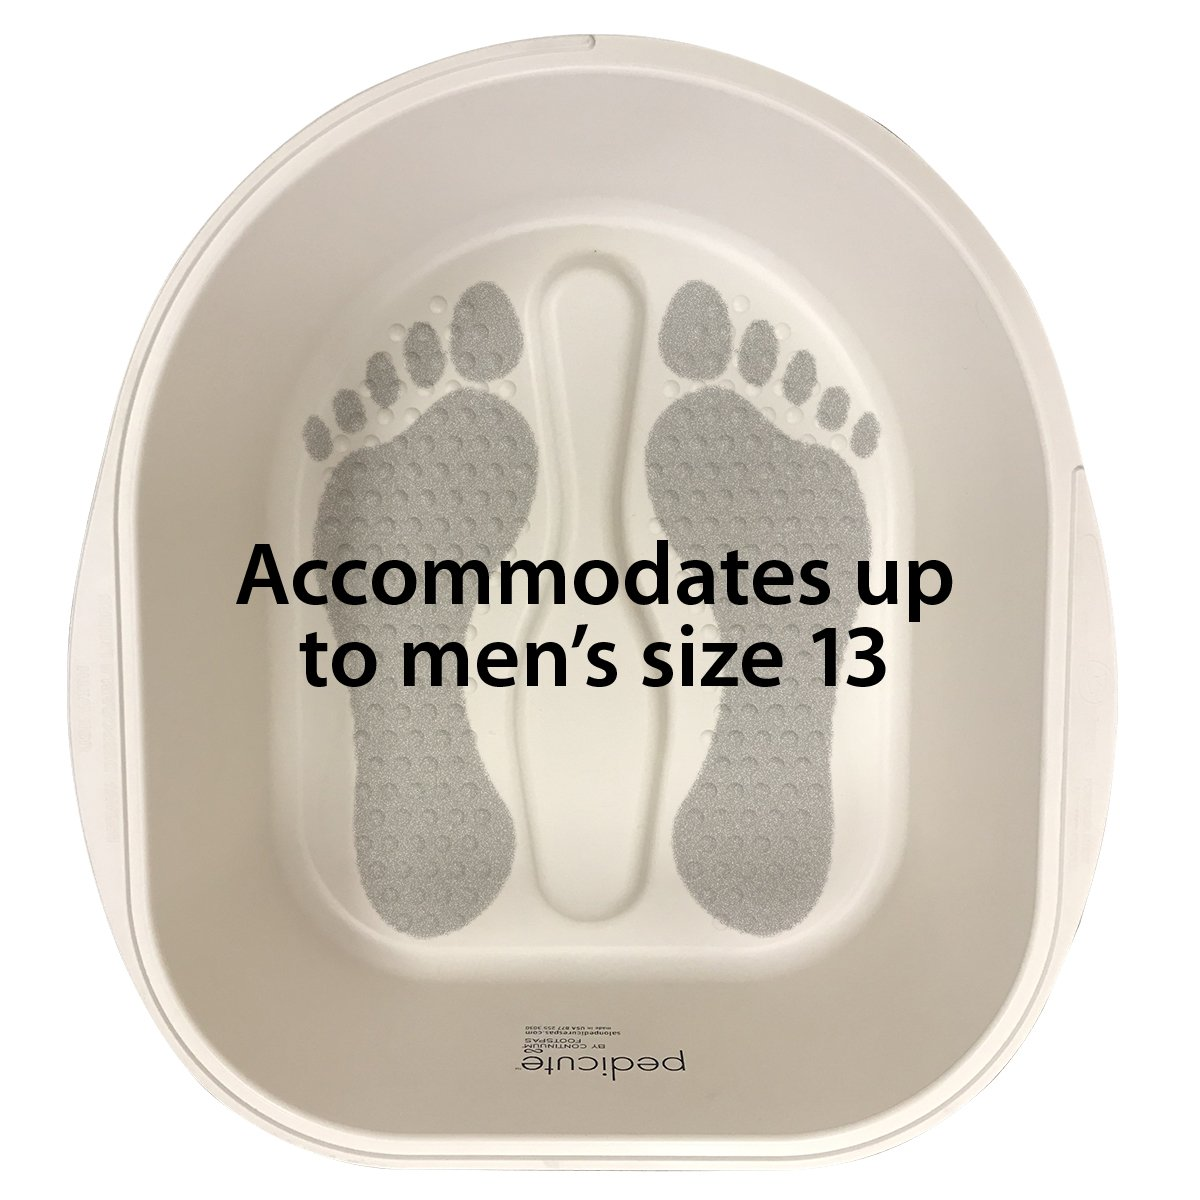 Pedicture_Accomodates_up_to_mens_size_13_1024x1024@2x